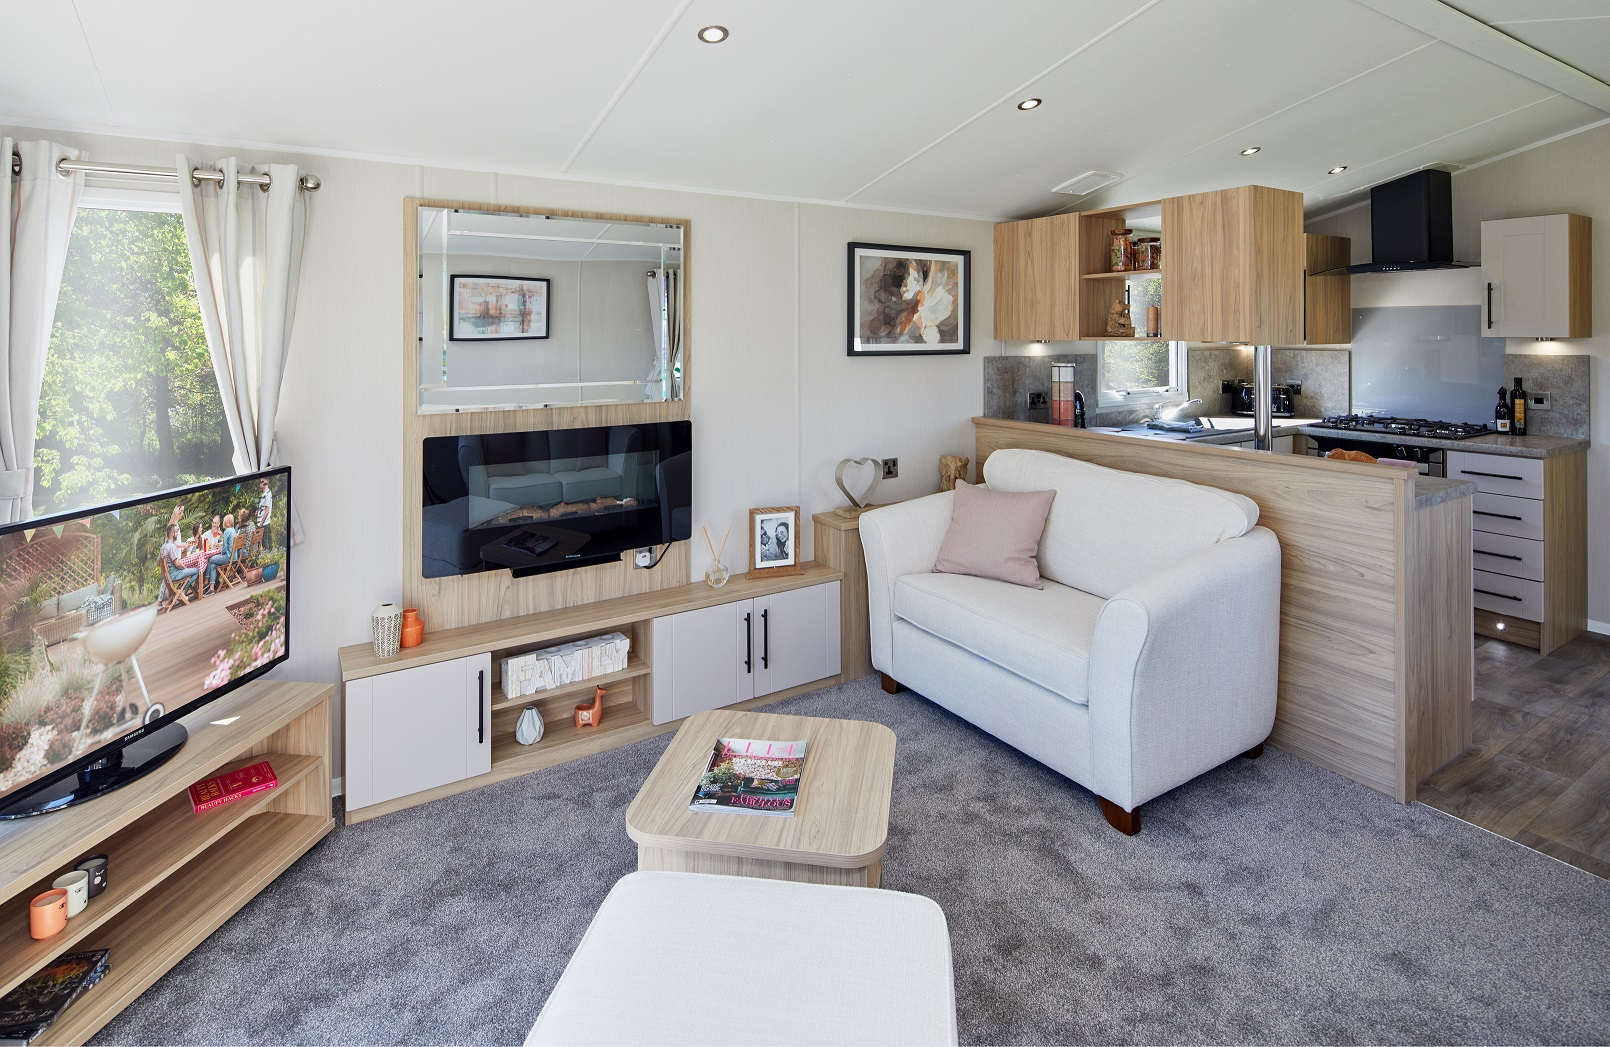 Willerby Manor: New Static Caravans and Holiday Homes for Sale, Clifton, Morpeth Large Image 2